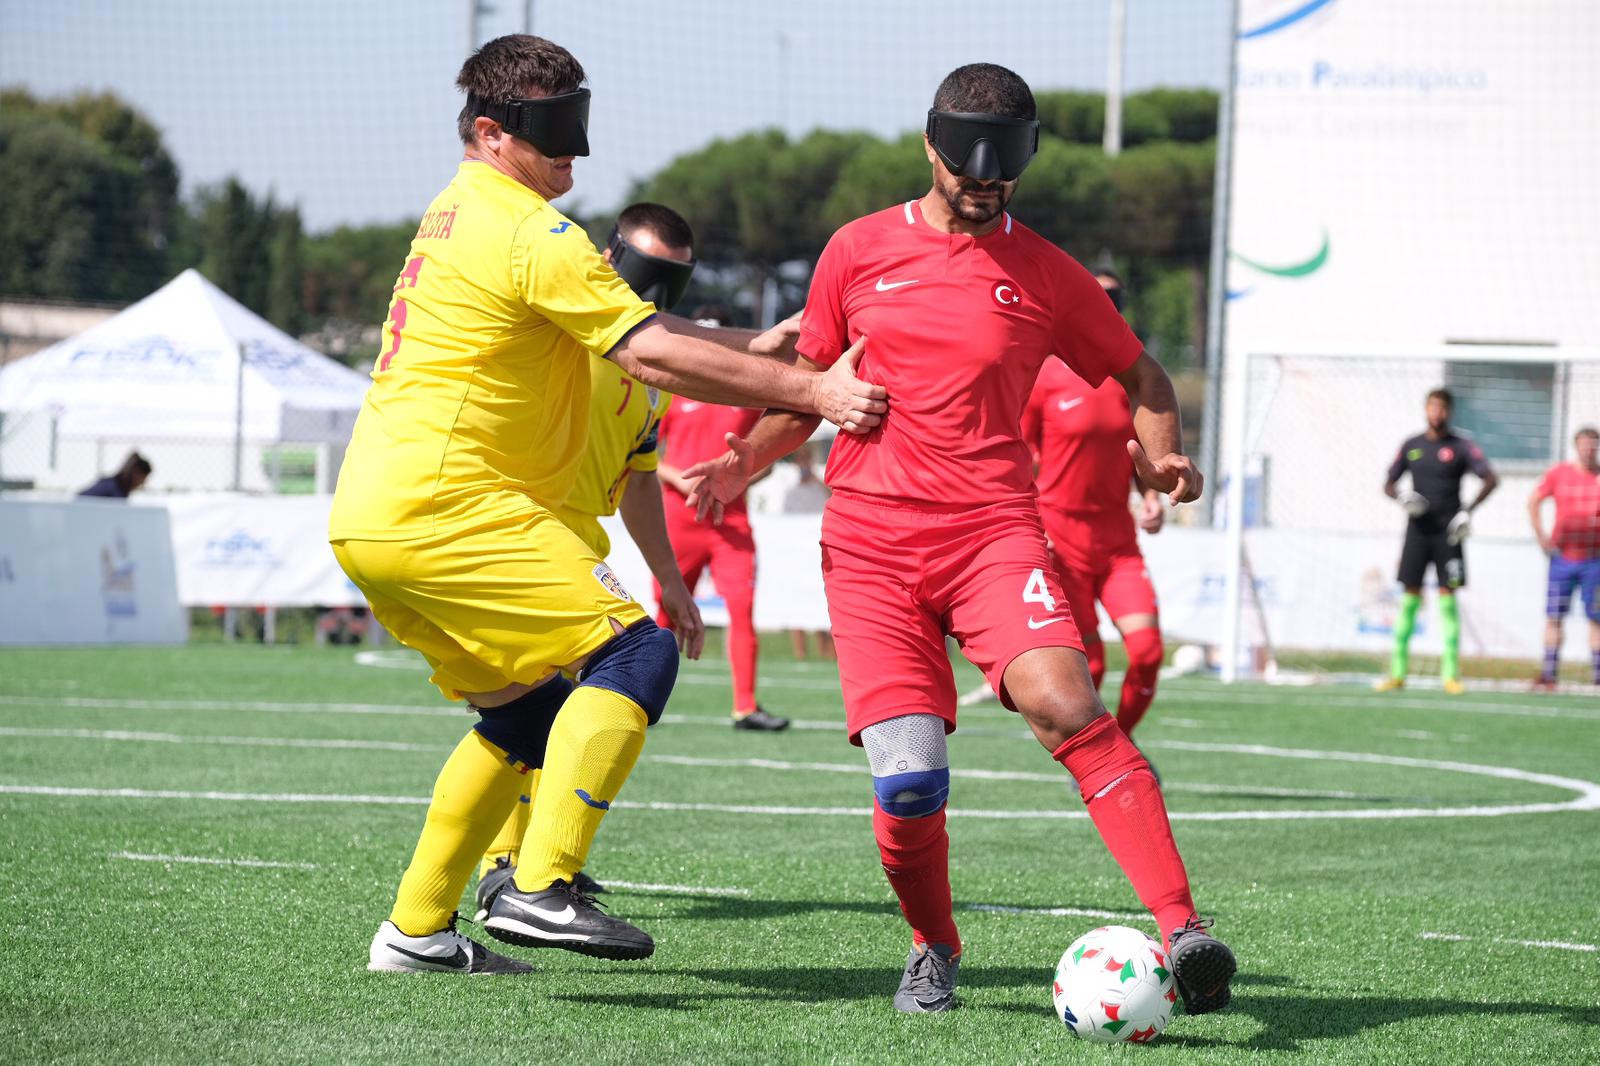 France and Turkey in semi-finals at Blind Football European Championships